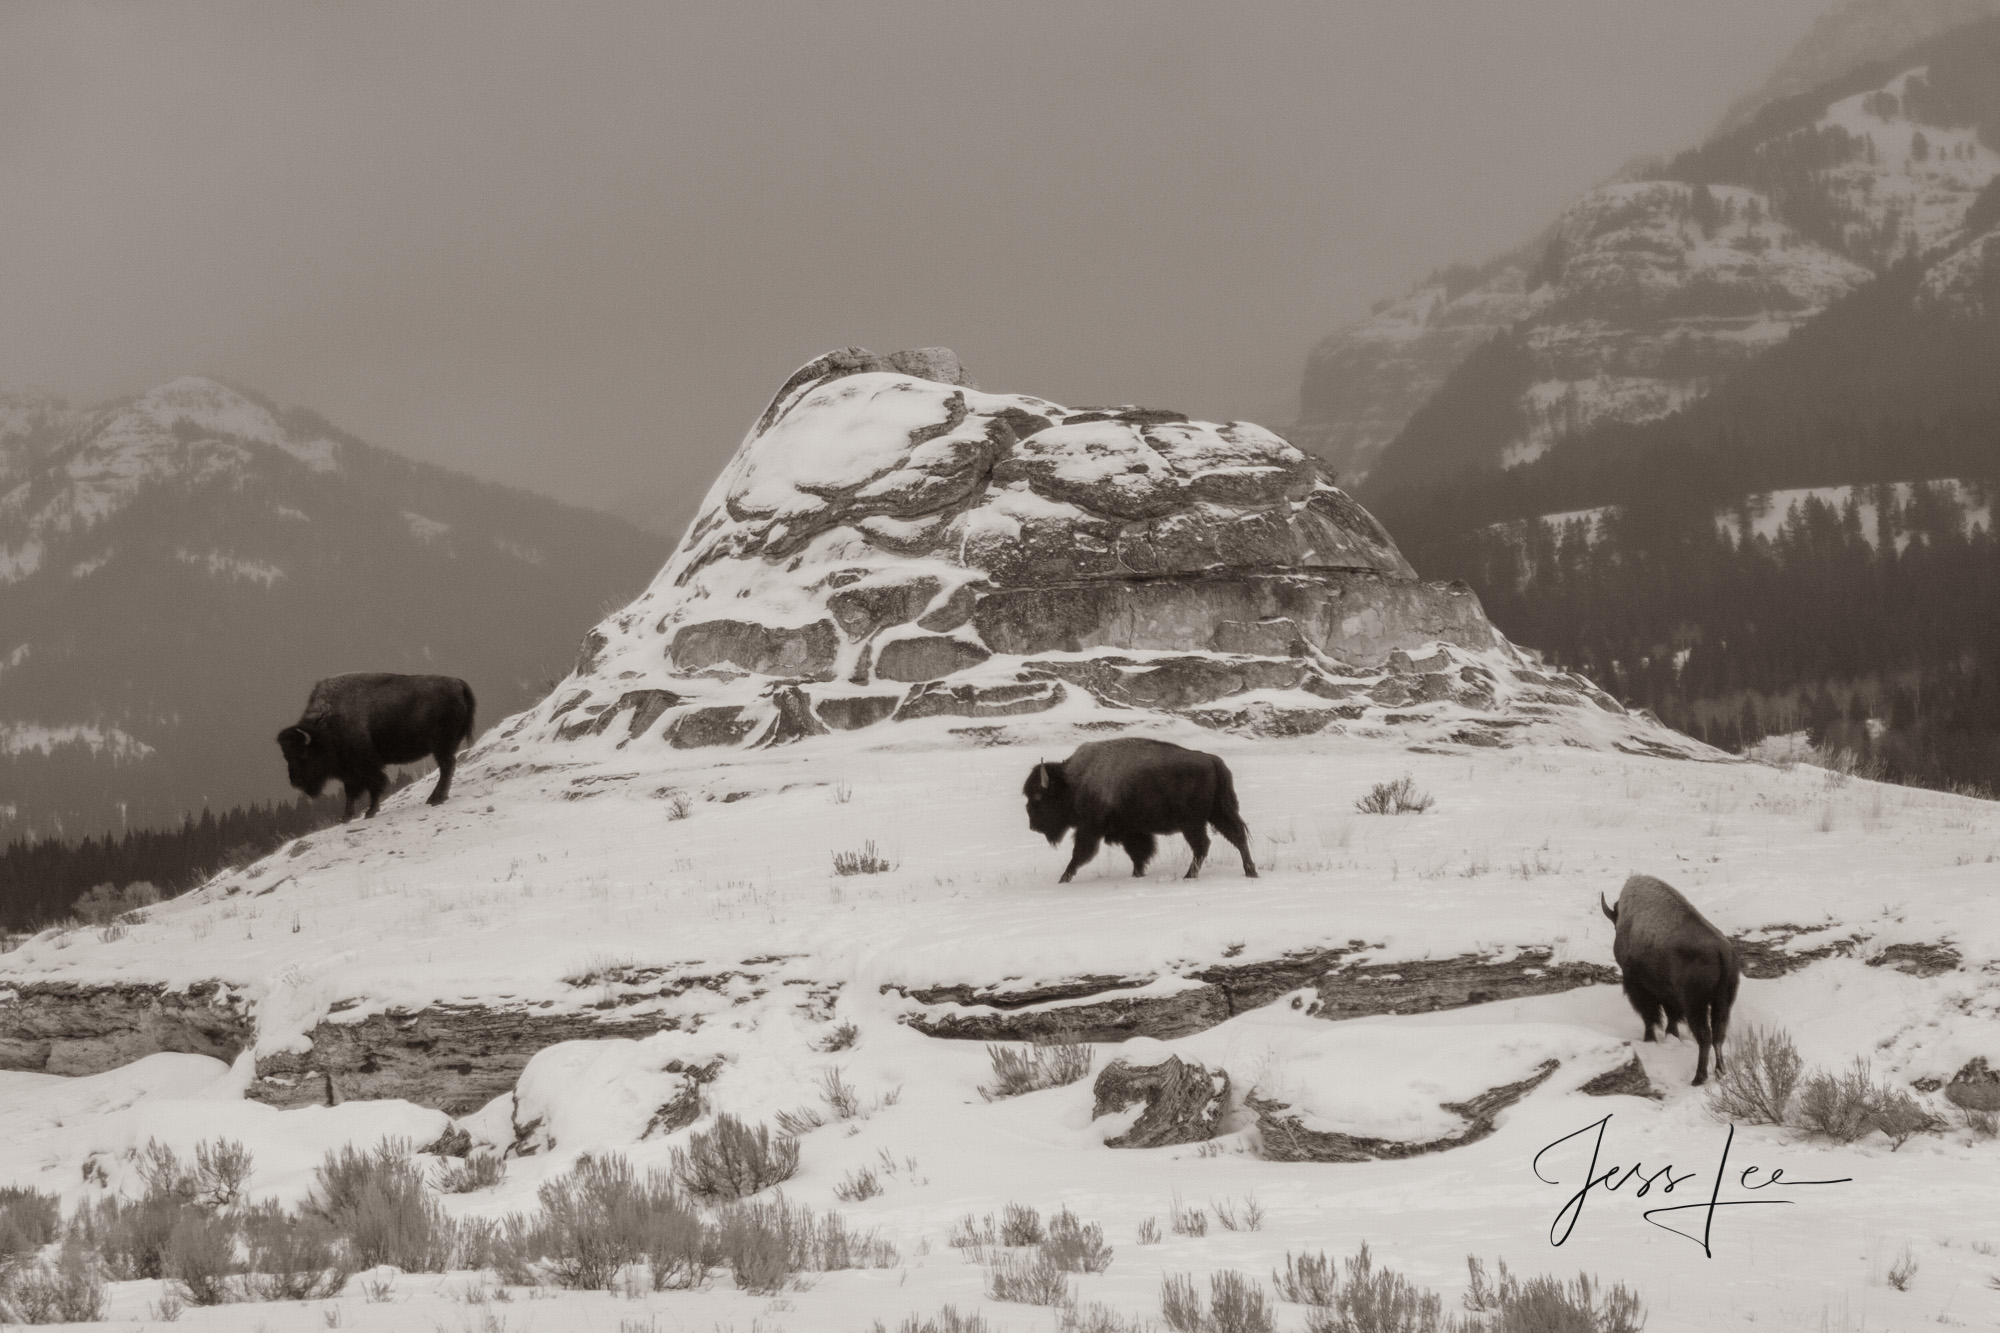 Yellowstone Bison or American Buffalo.. A Limited Edition of 800 Prints. These Soda Butte Bison fine art wildlife photographs...